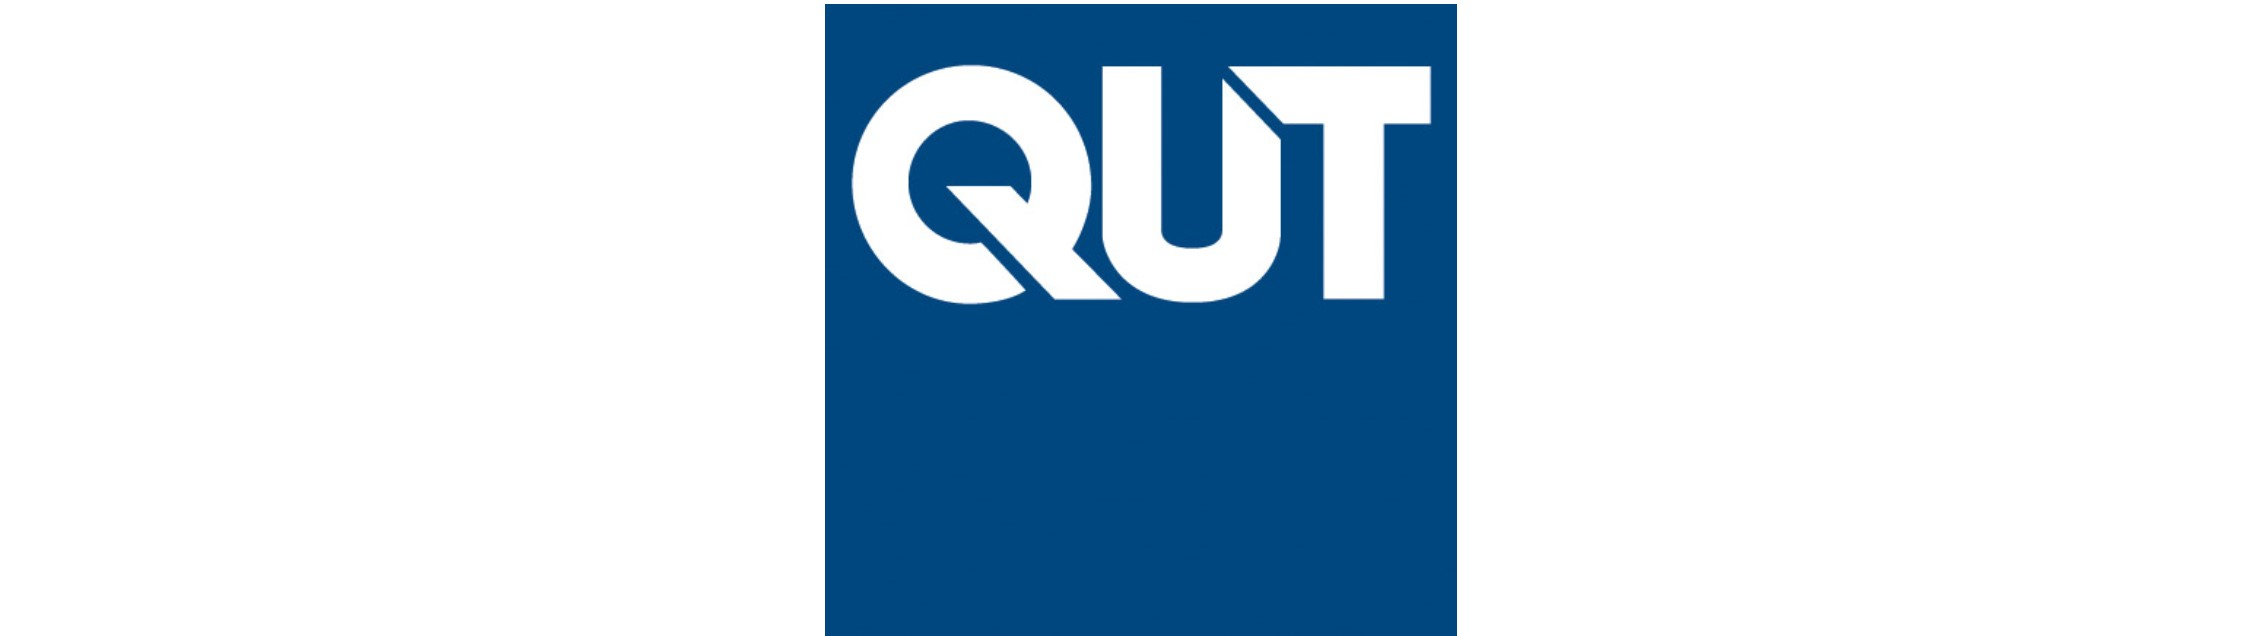 Brisbane Universities Languages Alliance – Take Your Degree with regard to 2020 Qut Academic Calendar